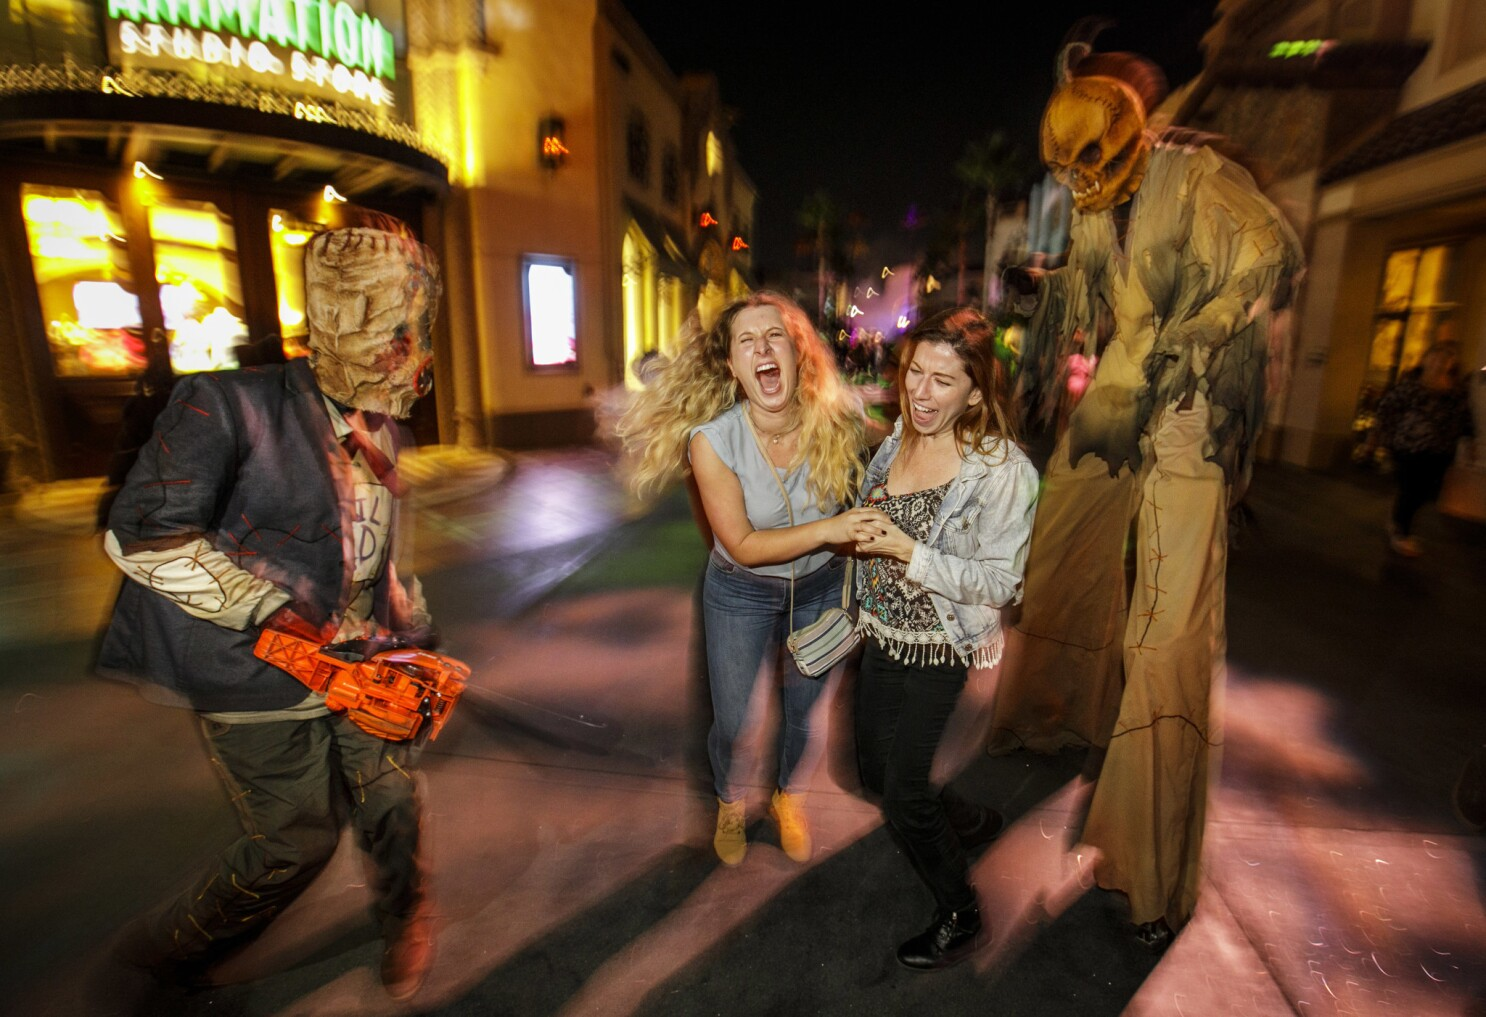 Los Angeles Halloween 2020 Halloween canceled? COVID 19 threatens theme parks, costumers